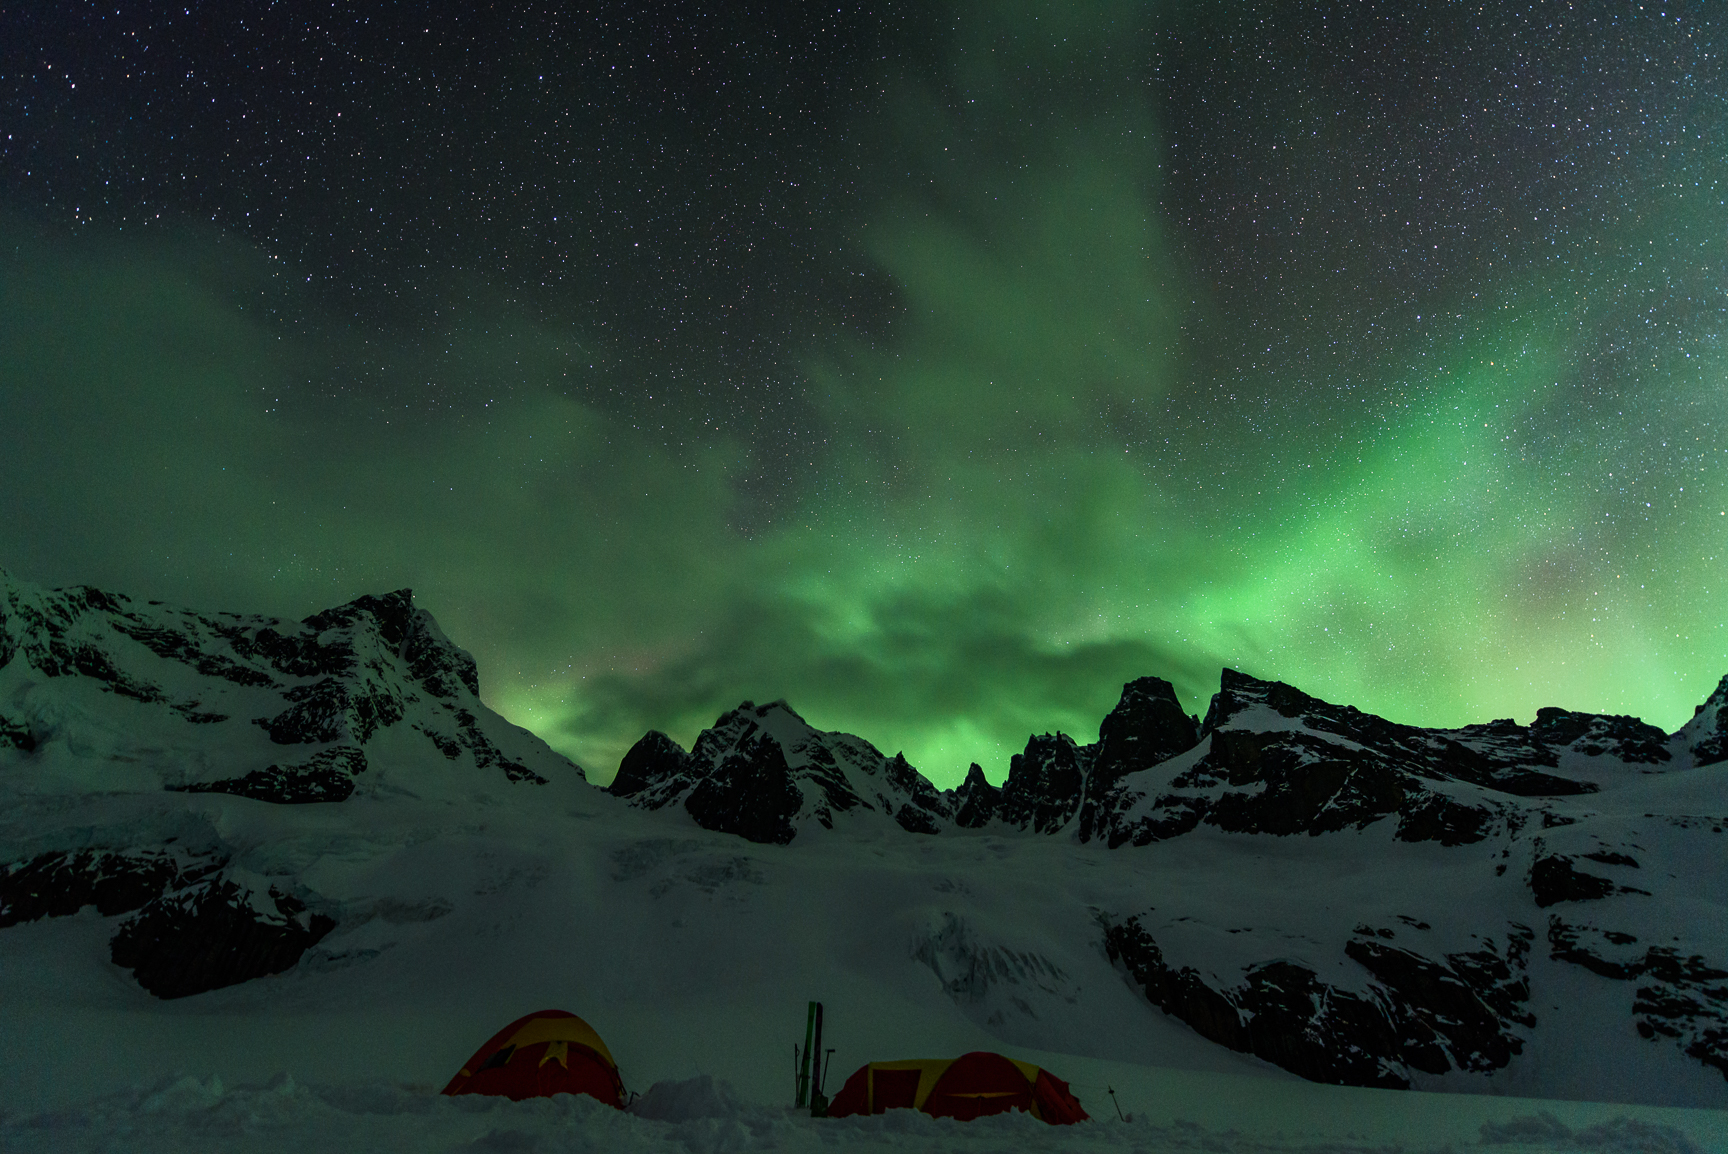 Green sky at night - copyright Fred Marmsater